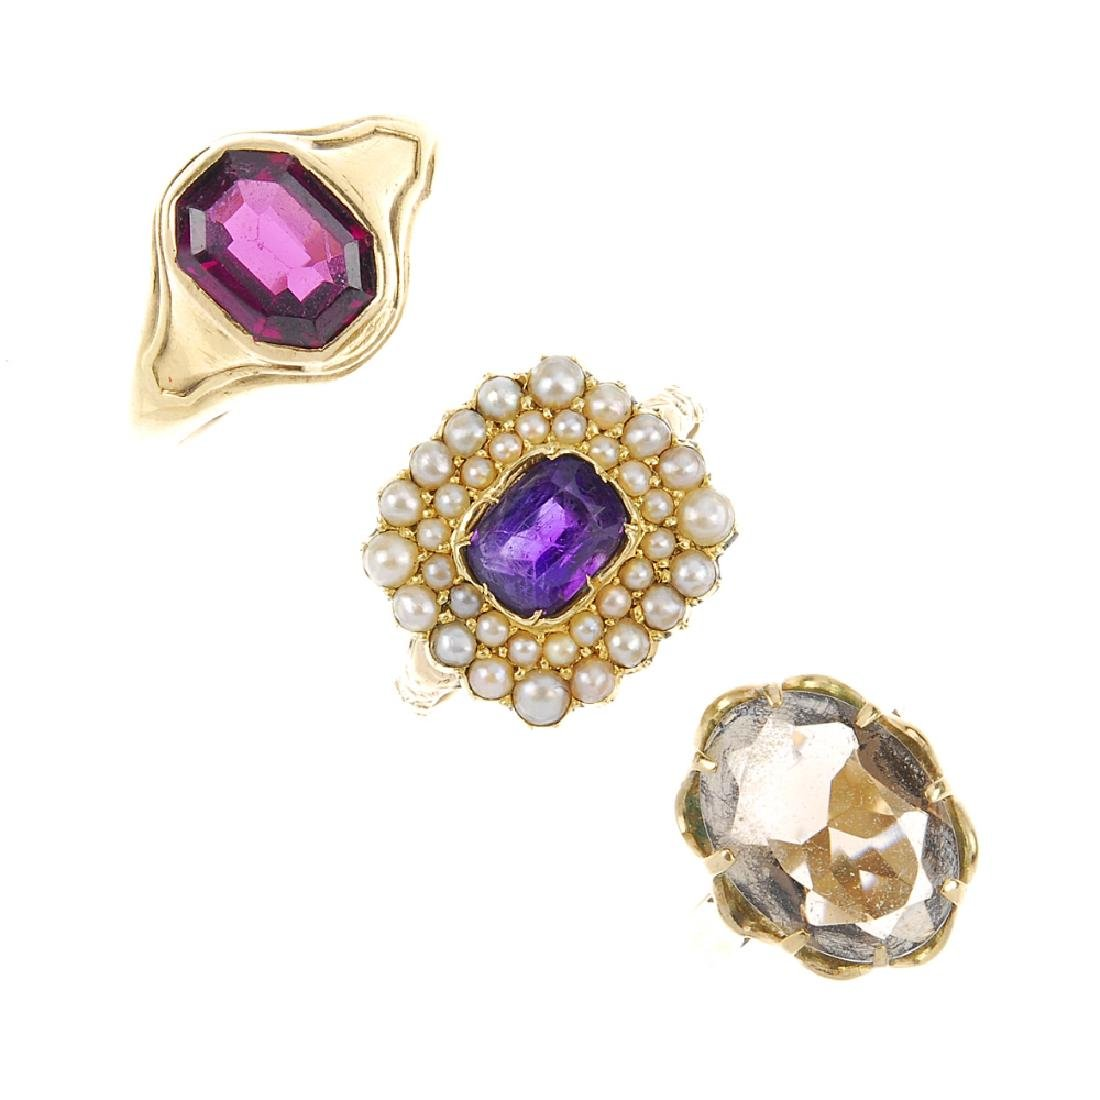 Three rings. The first a rectangular amethyst claw-set